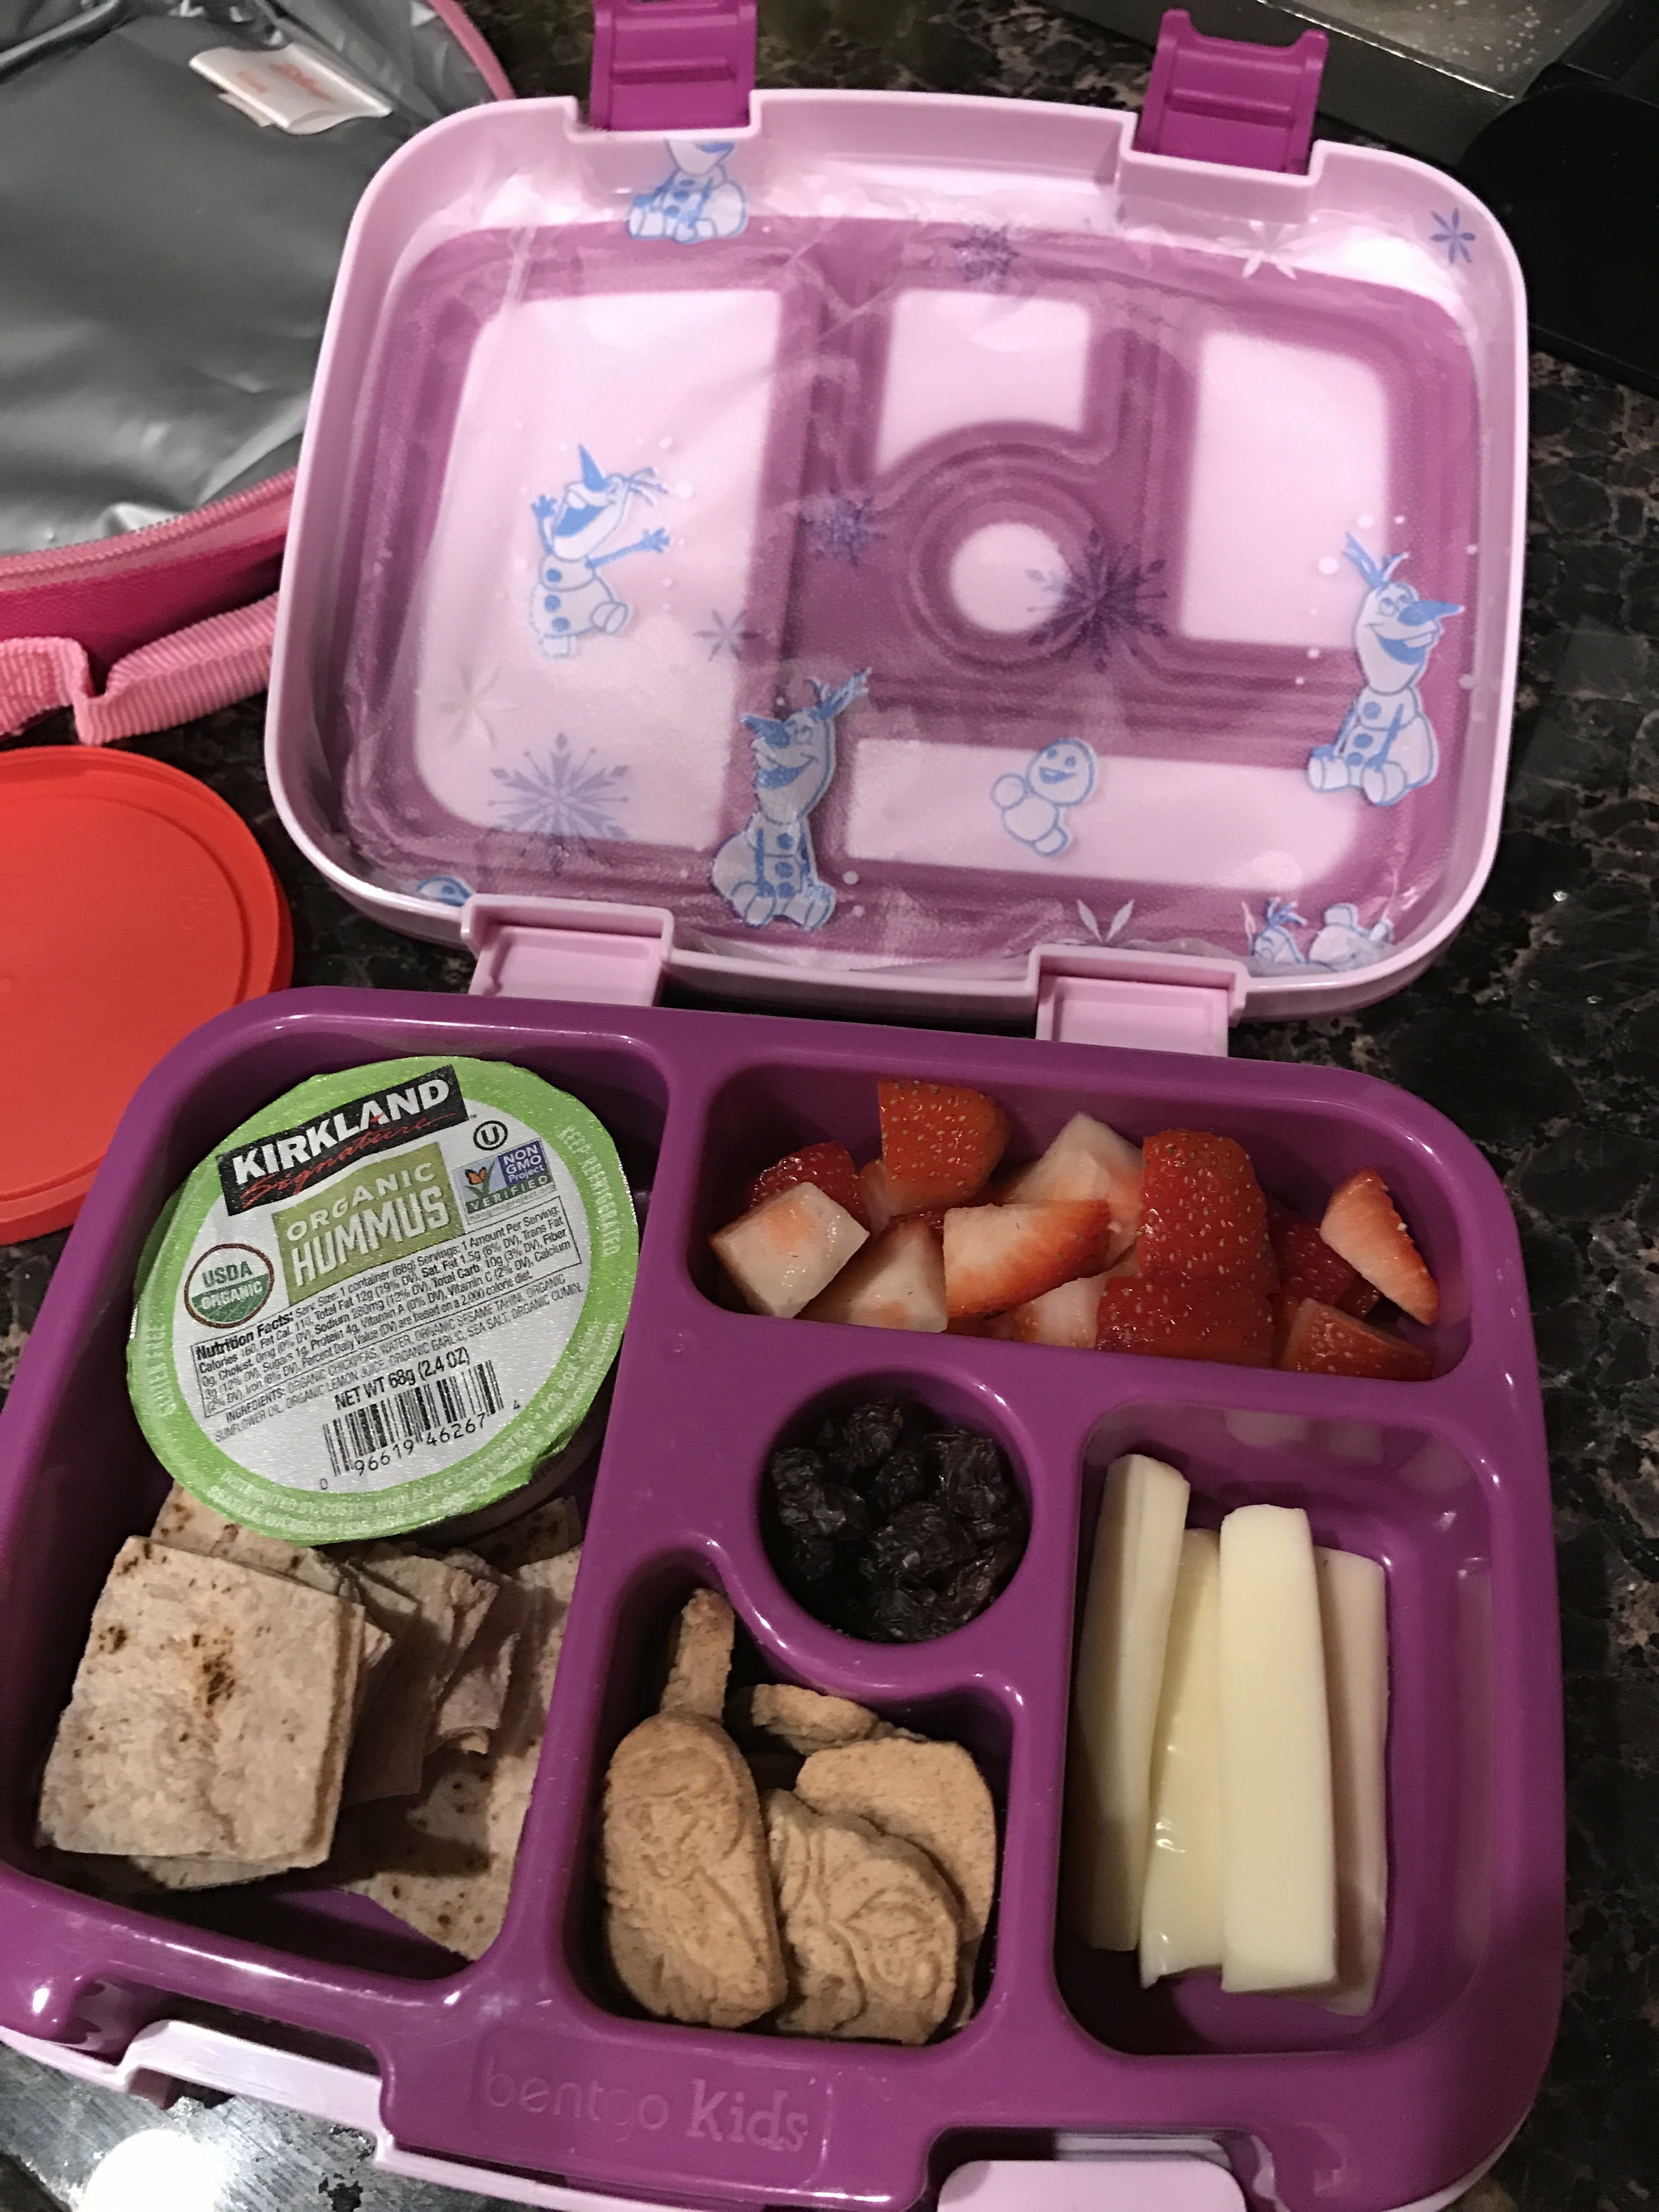 My favorite Bent(g)o Box for Packing Lunches